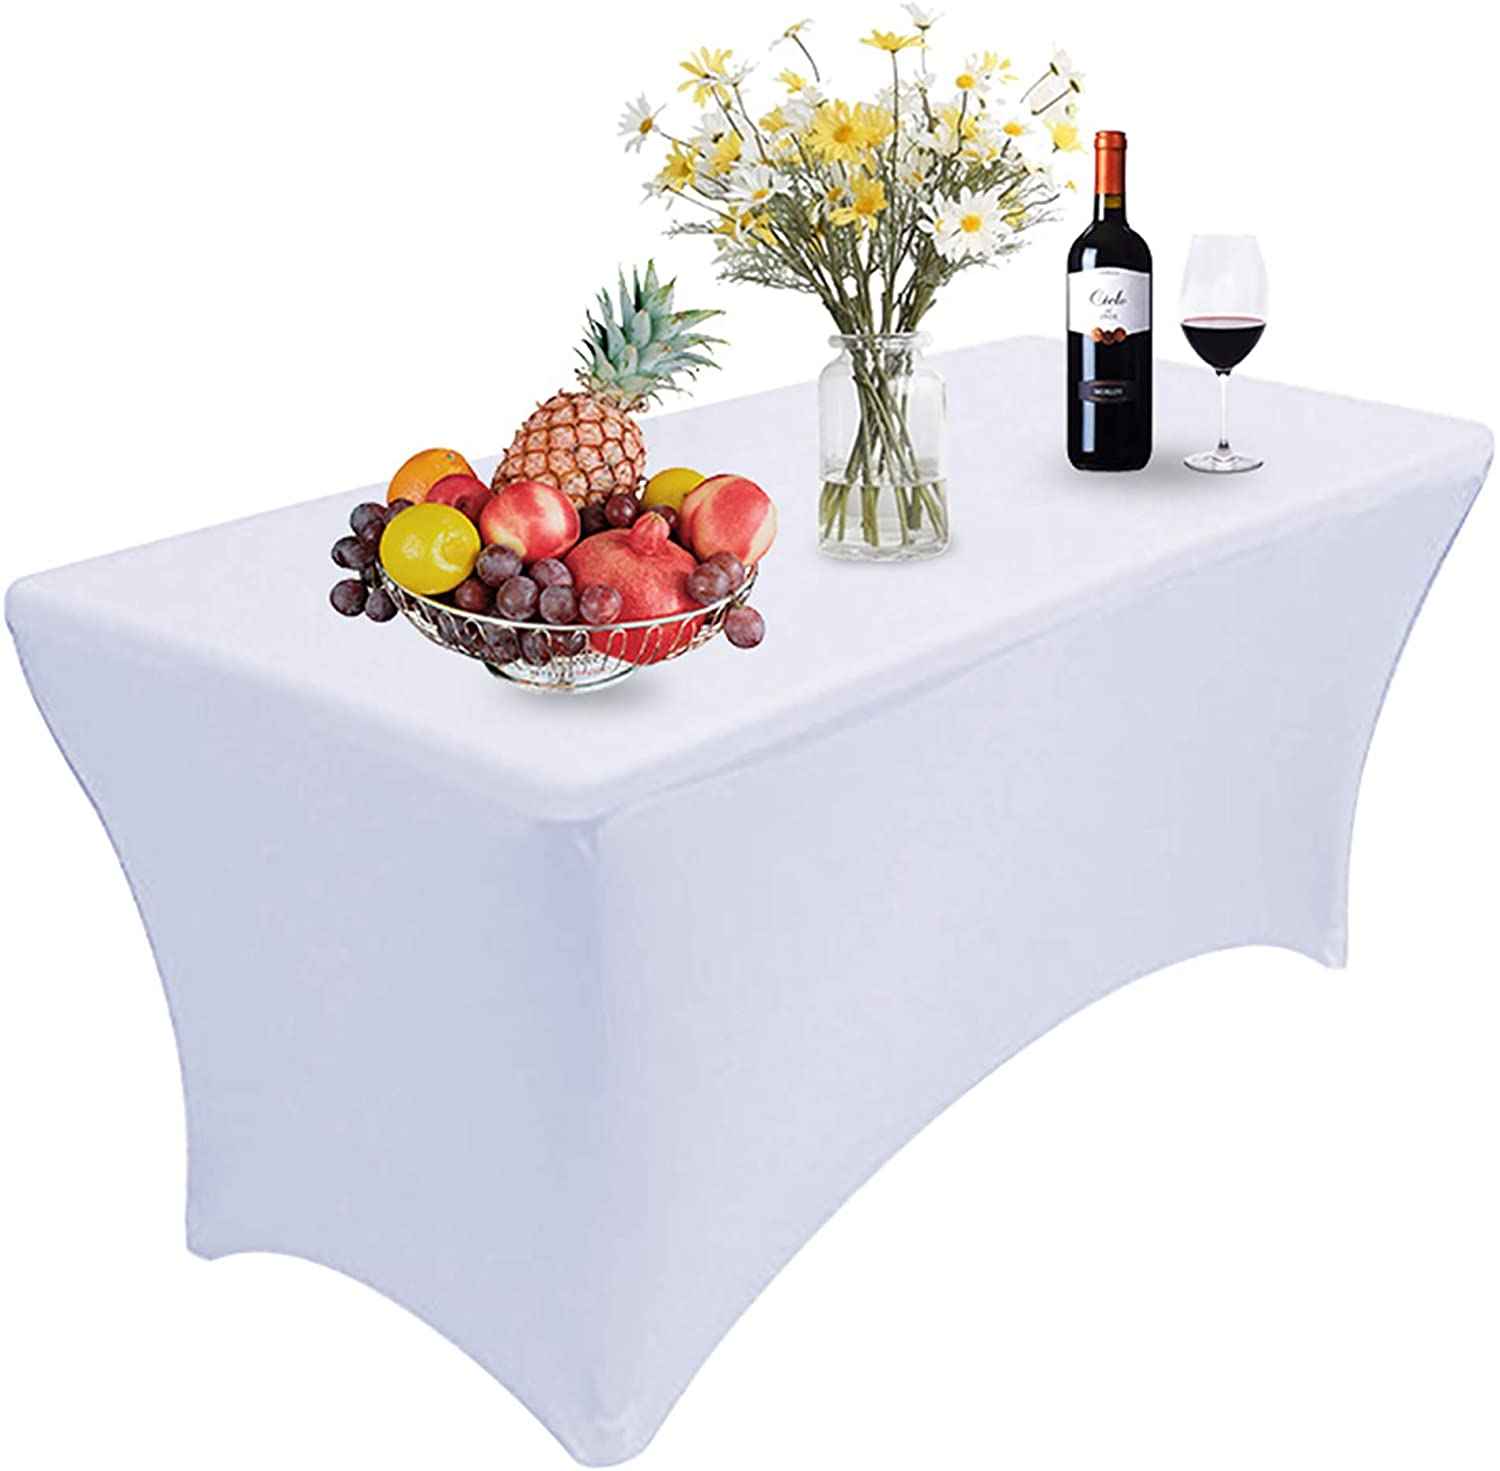 Reliancer 1 Pack 4FT Rectangular Spandex Table Cover Four-Way Tight Fitted Stretch Tablecloth Table Cloth for Outdoor Party DJ Tradeshow Banquet Vendor Wedding Celebration (1PC 4FT, White)